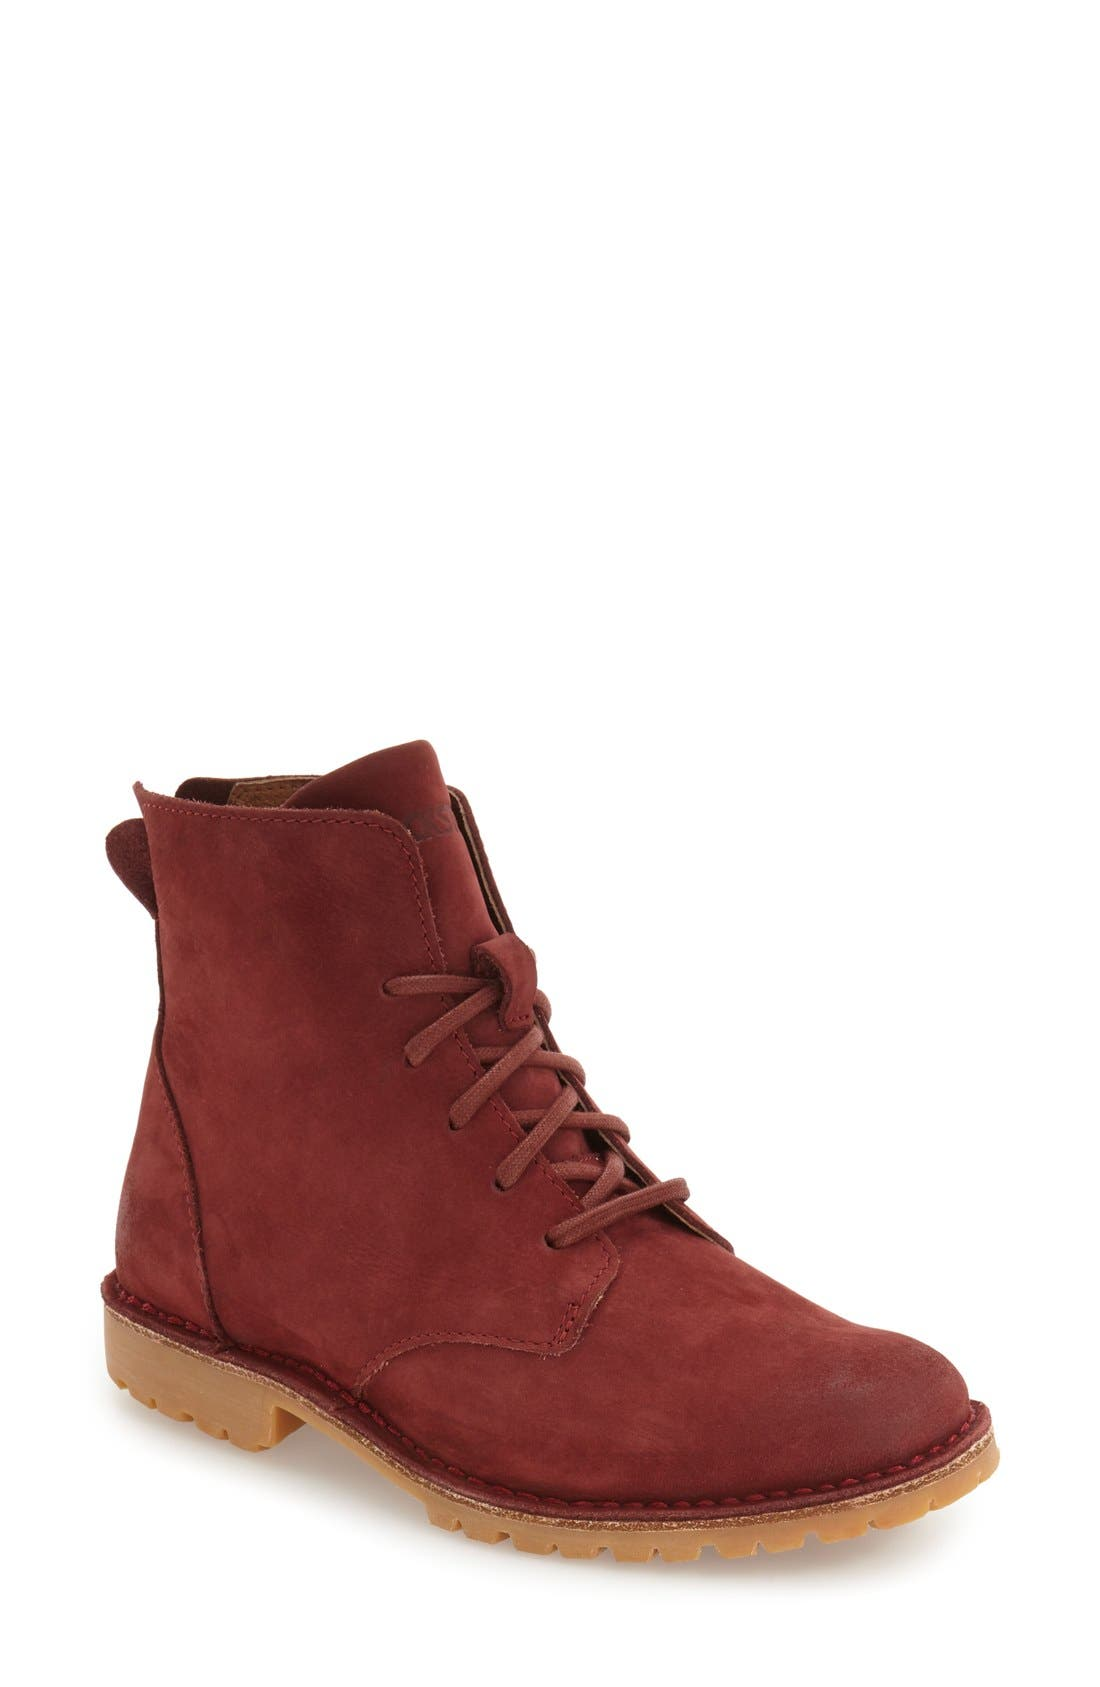 'KL67' Lace-Up Boot,                             Main thumbnail 1, color,                             CORDOVAN NUBUCK LEATHER